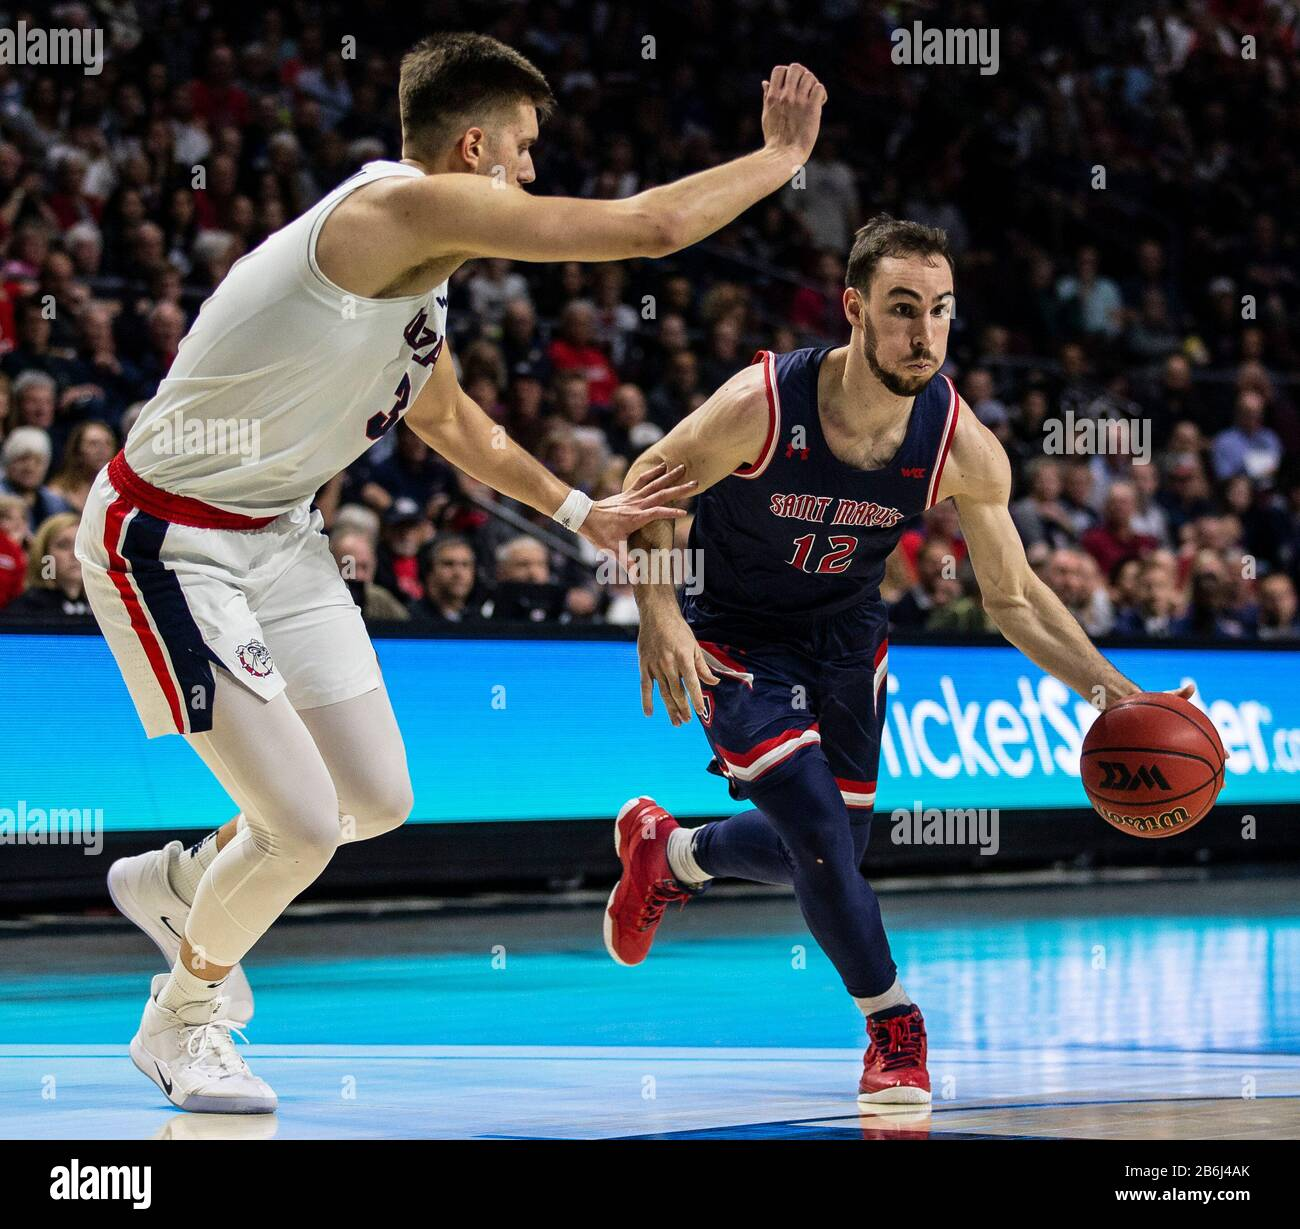 Mar 10 2020 Las Vegas, NV, U.S.A. St. Mary's Gaels guard Tommy ...